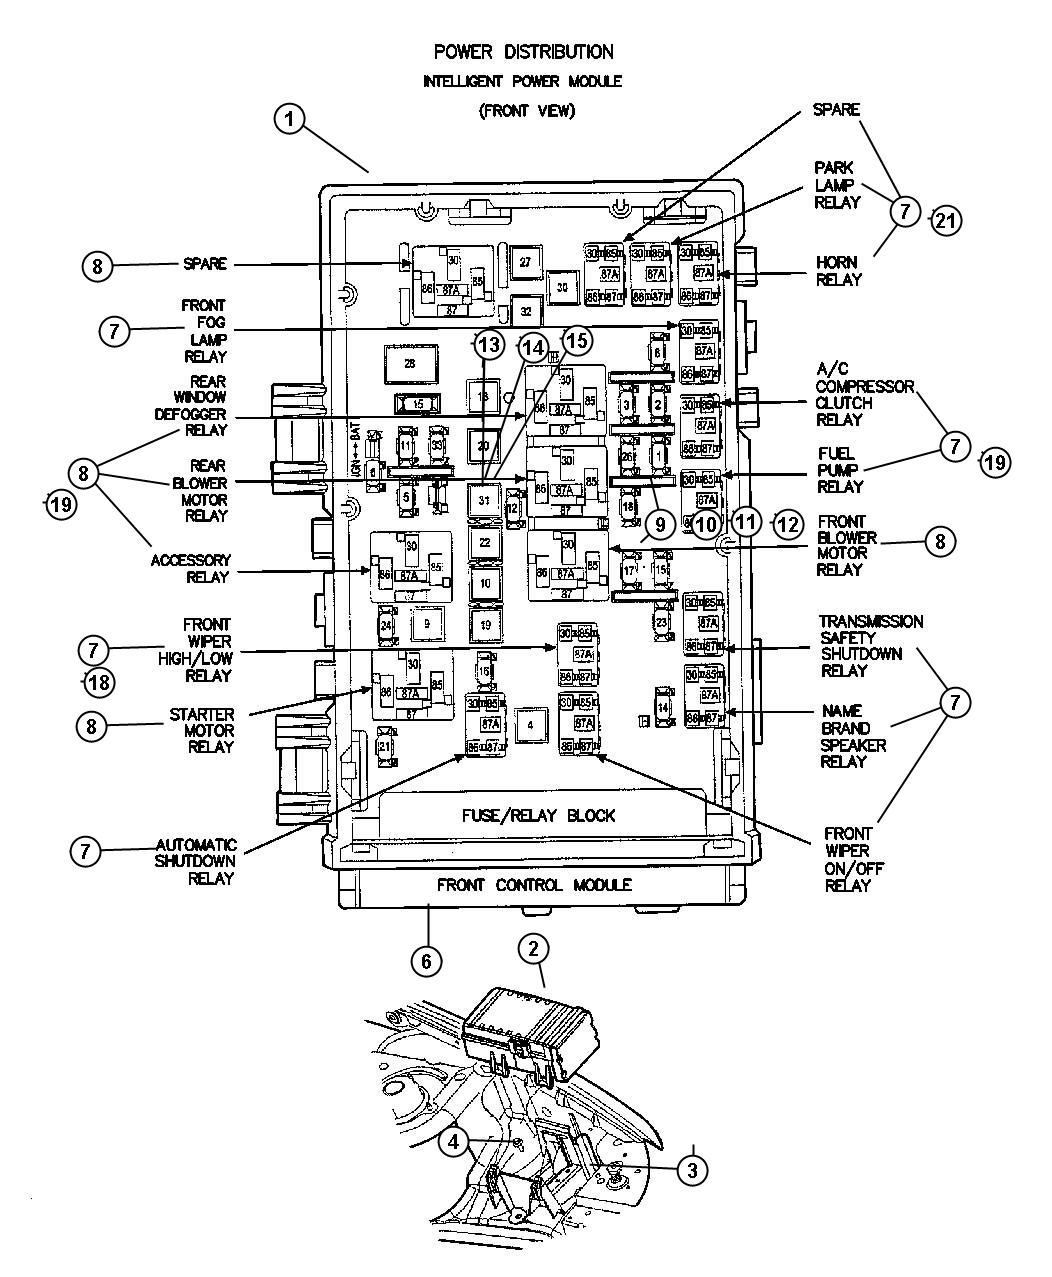 1998 Dodge Dakota Manual Transmission Parts Diagram, 1998